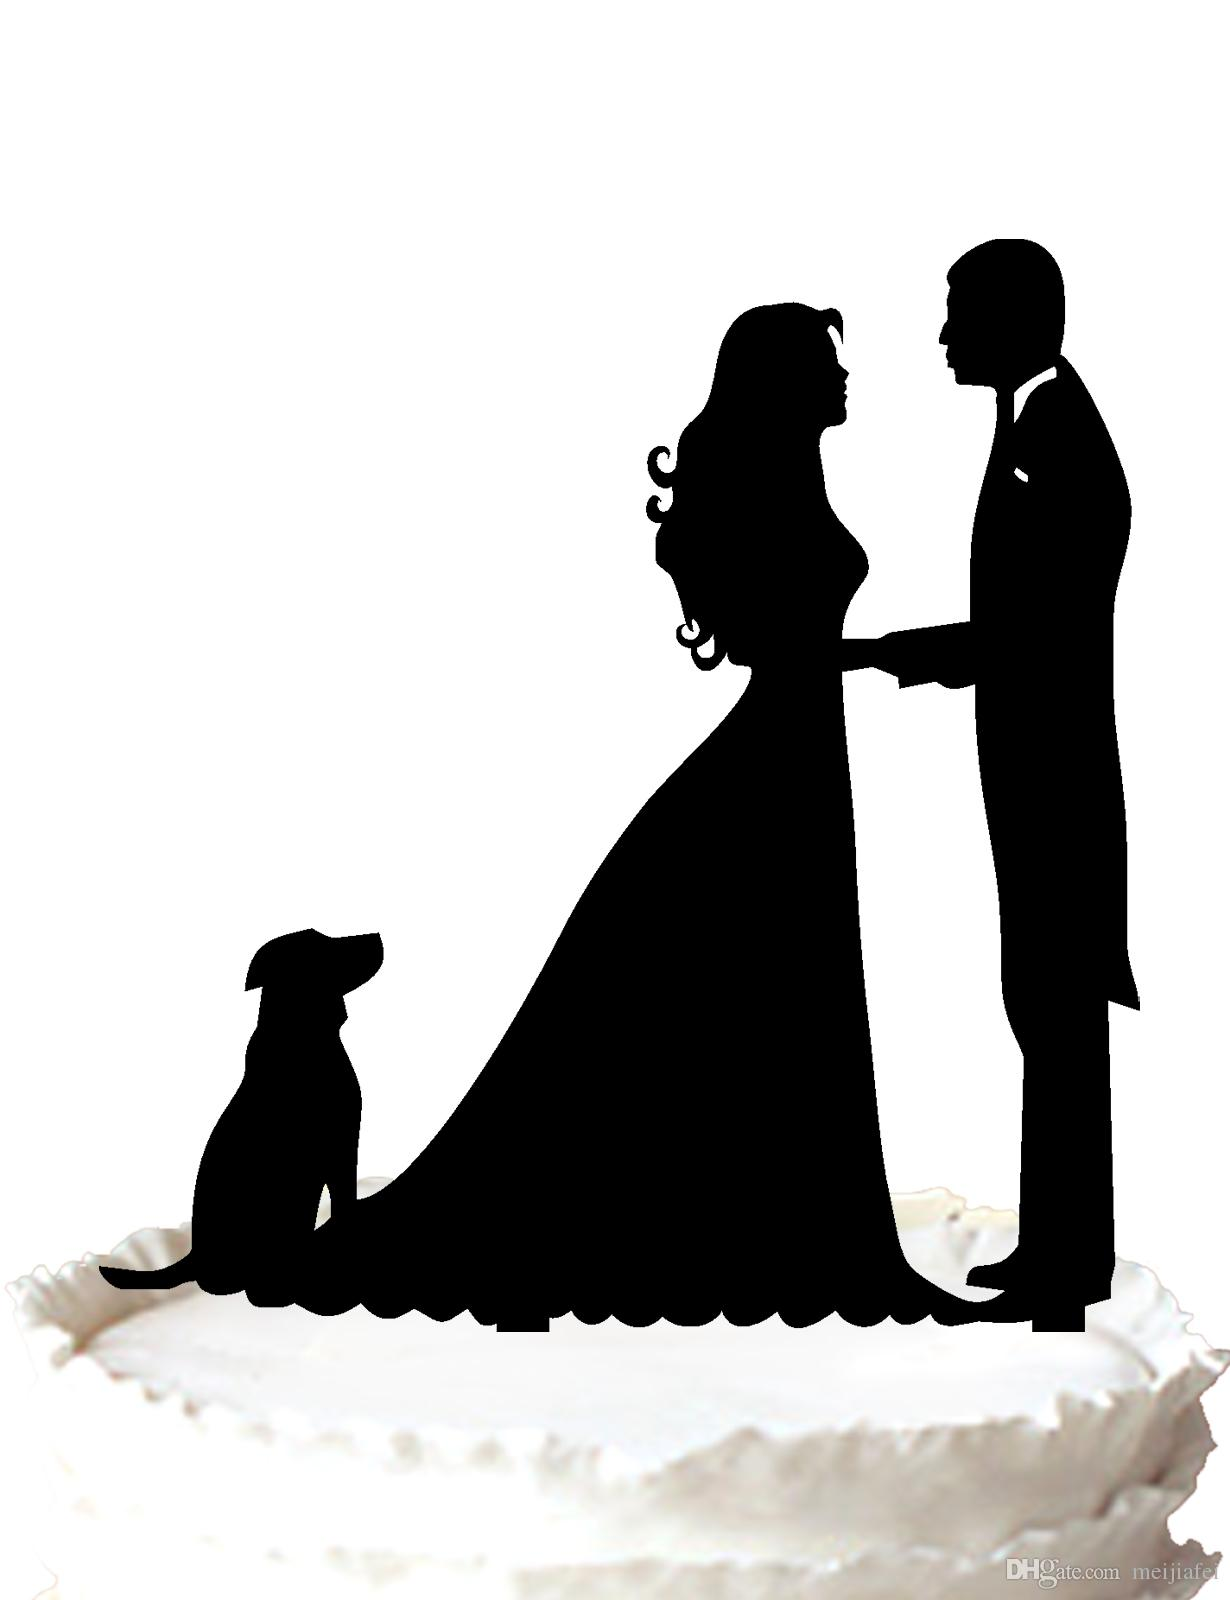 Funny wedding cake topper bride and groom silhouette with dog pet funny wedding cake topper bride and groom silhouette with dog pet for option funny cake topper dog cake toper wedding cake topper online with 199piece junglespirit Choice Image